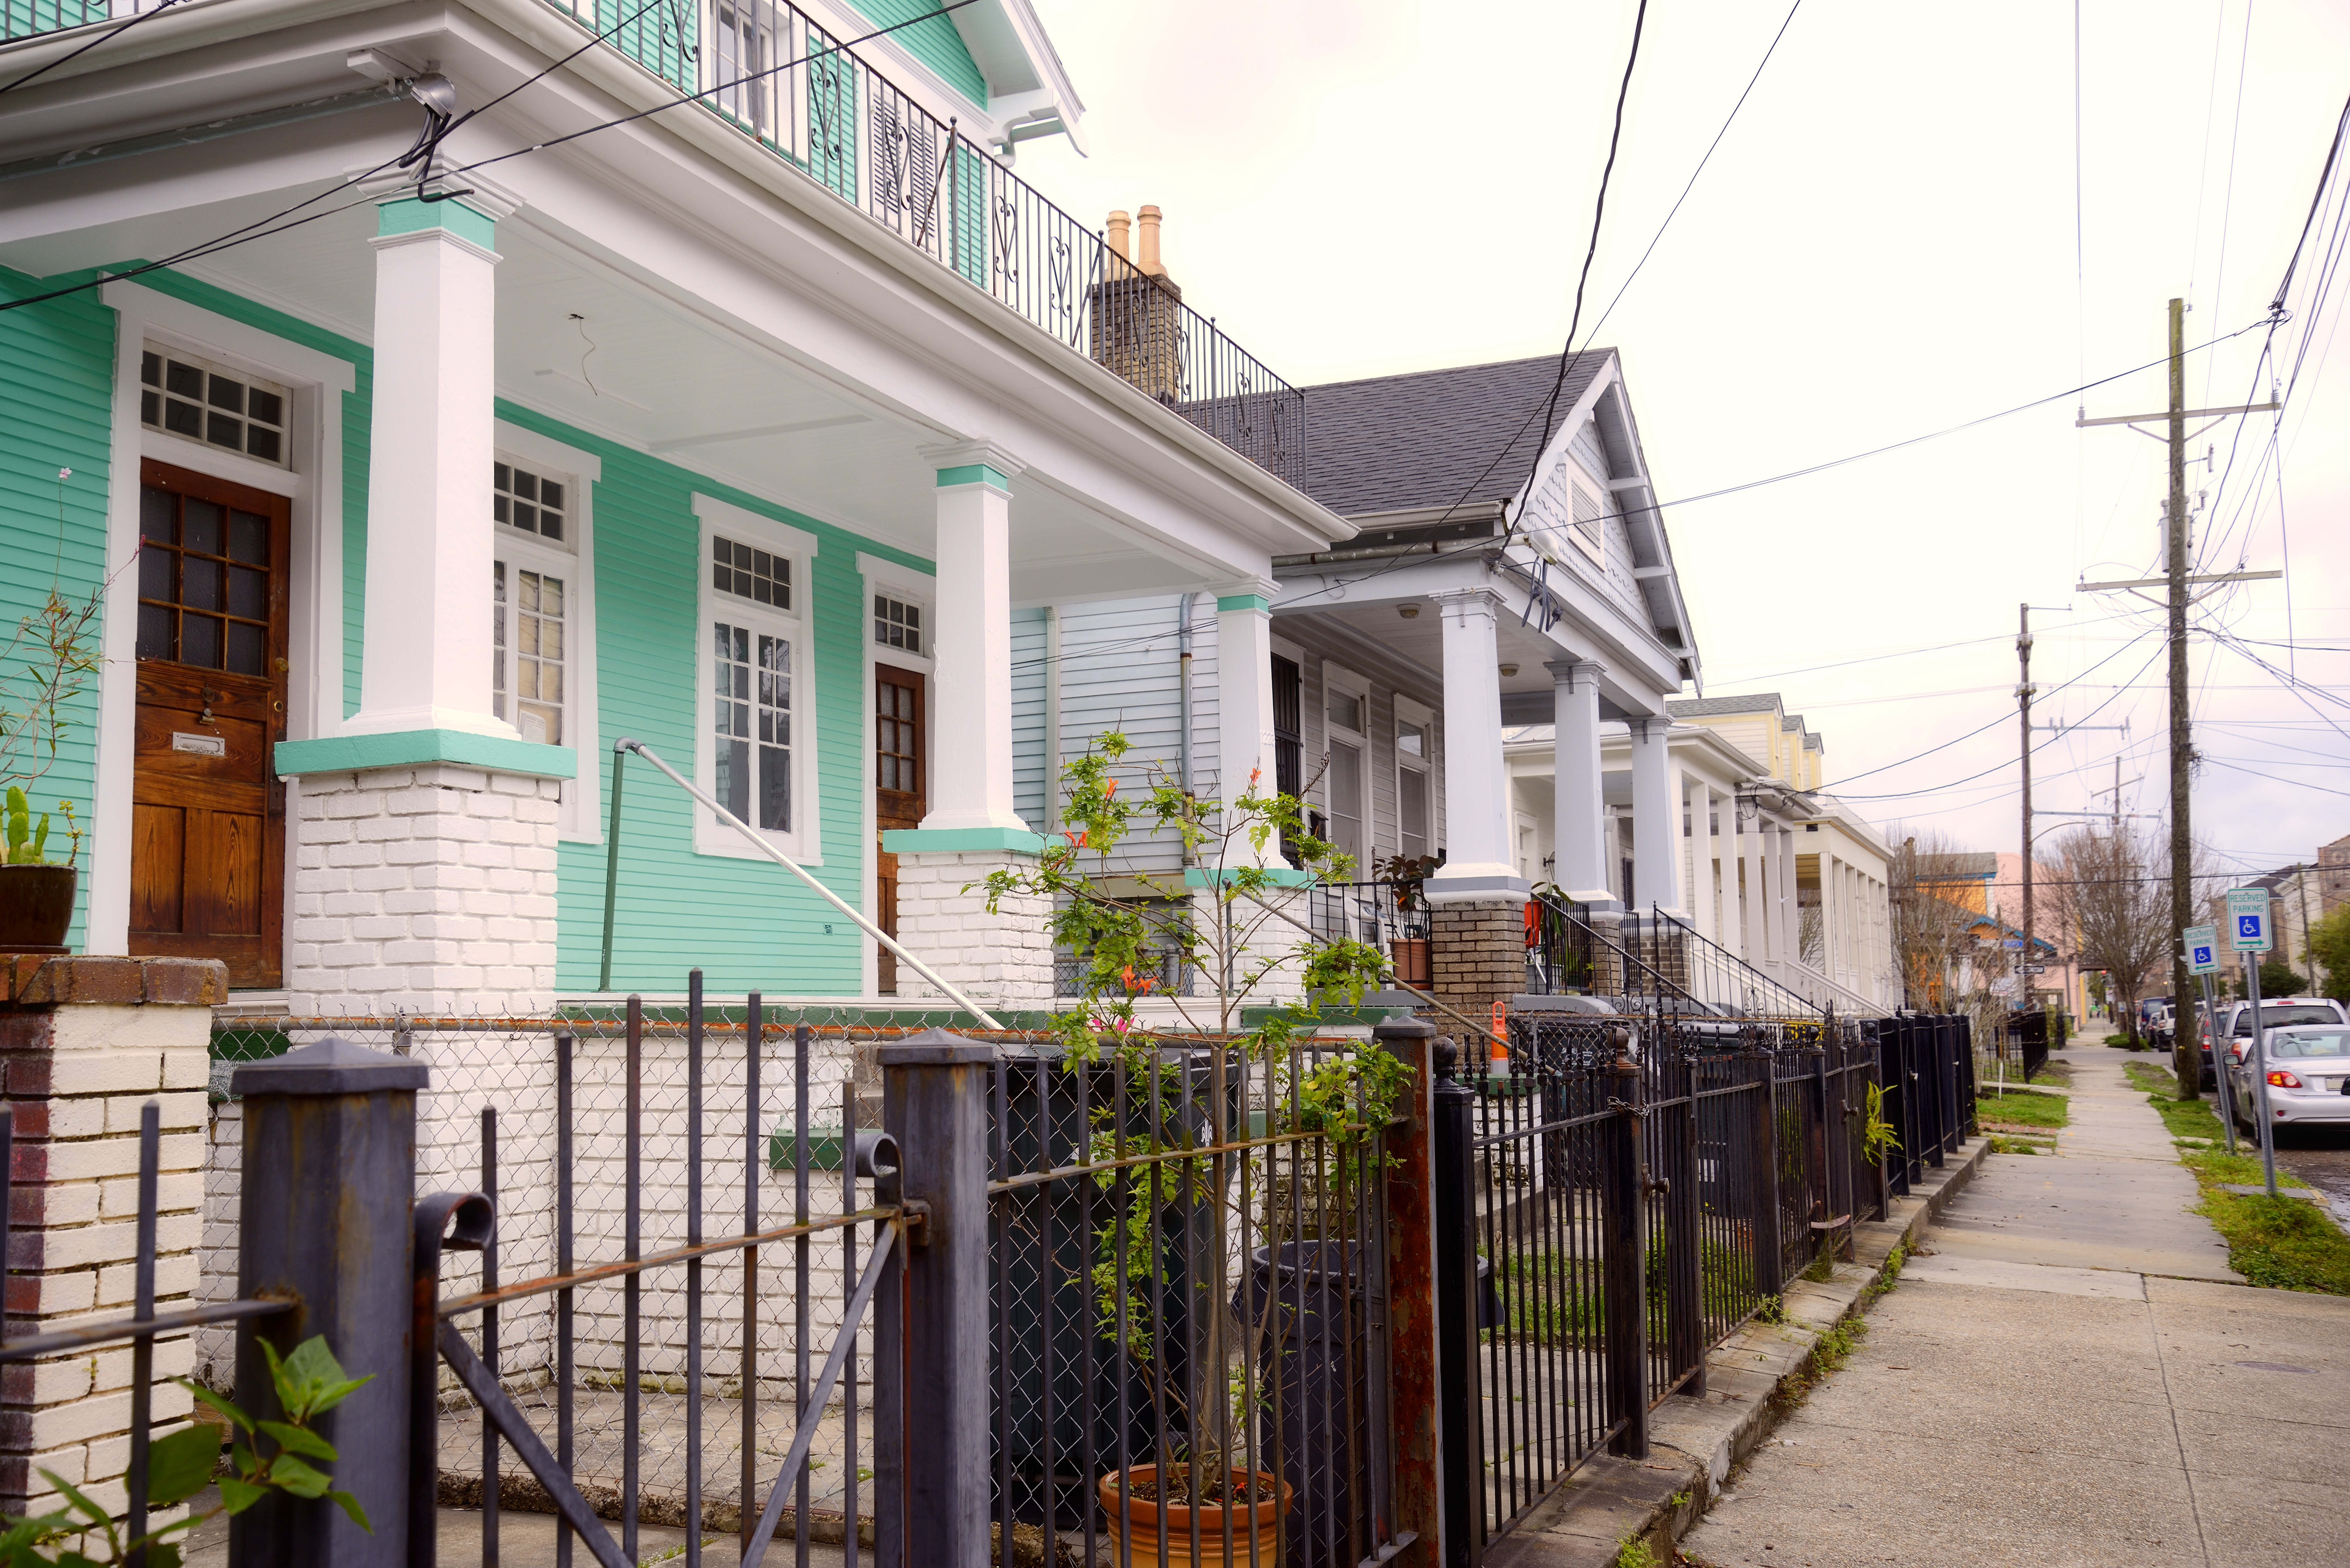 A row of New Orleans-style doubles on the left side of the street include a mint green home with white columns and black iron fence in front of a sidewalk